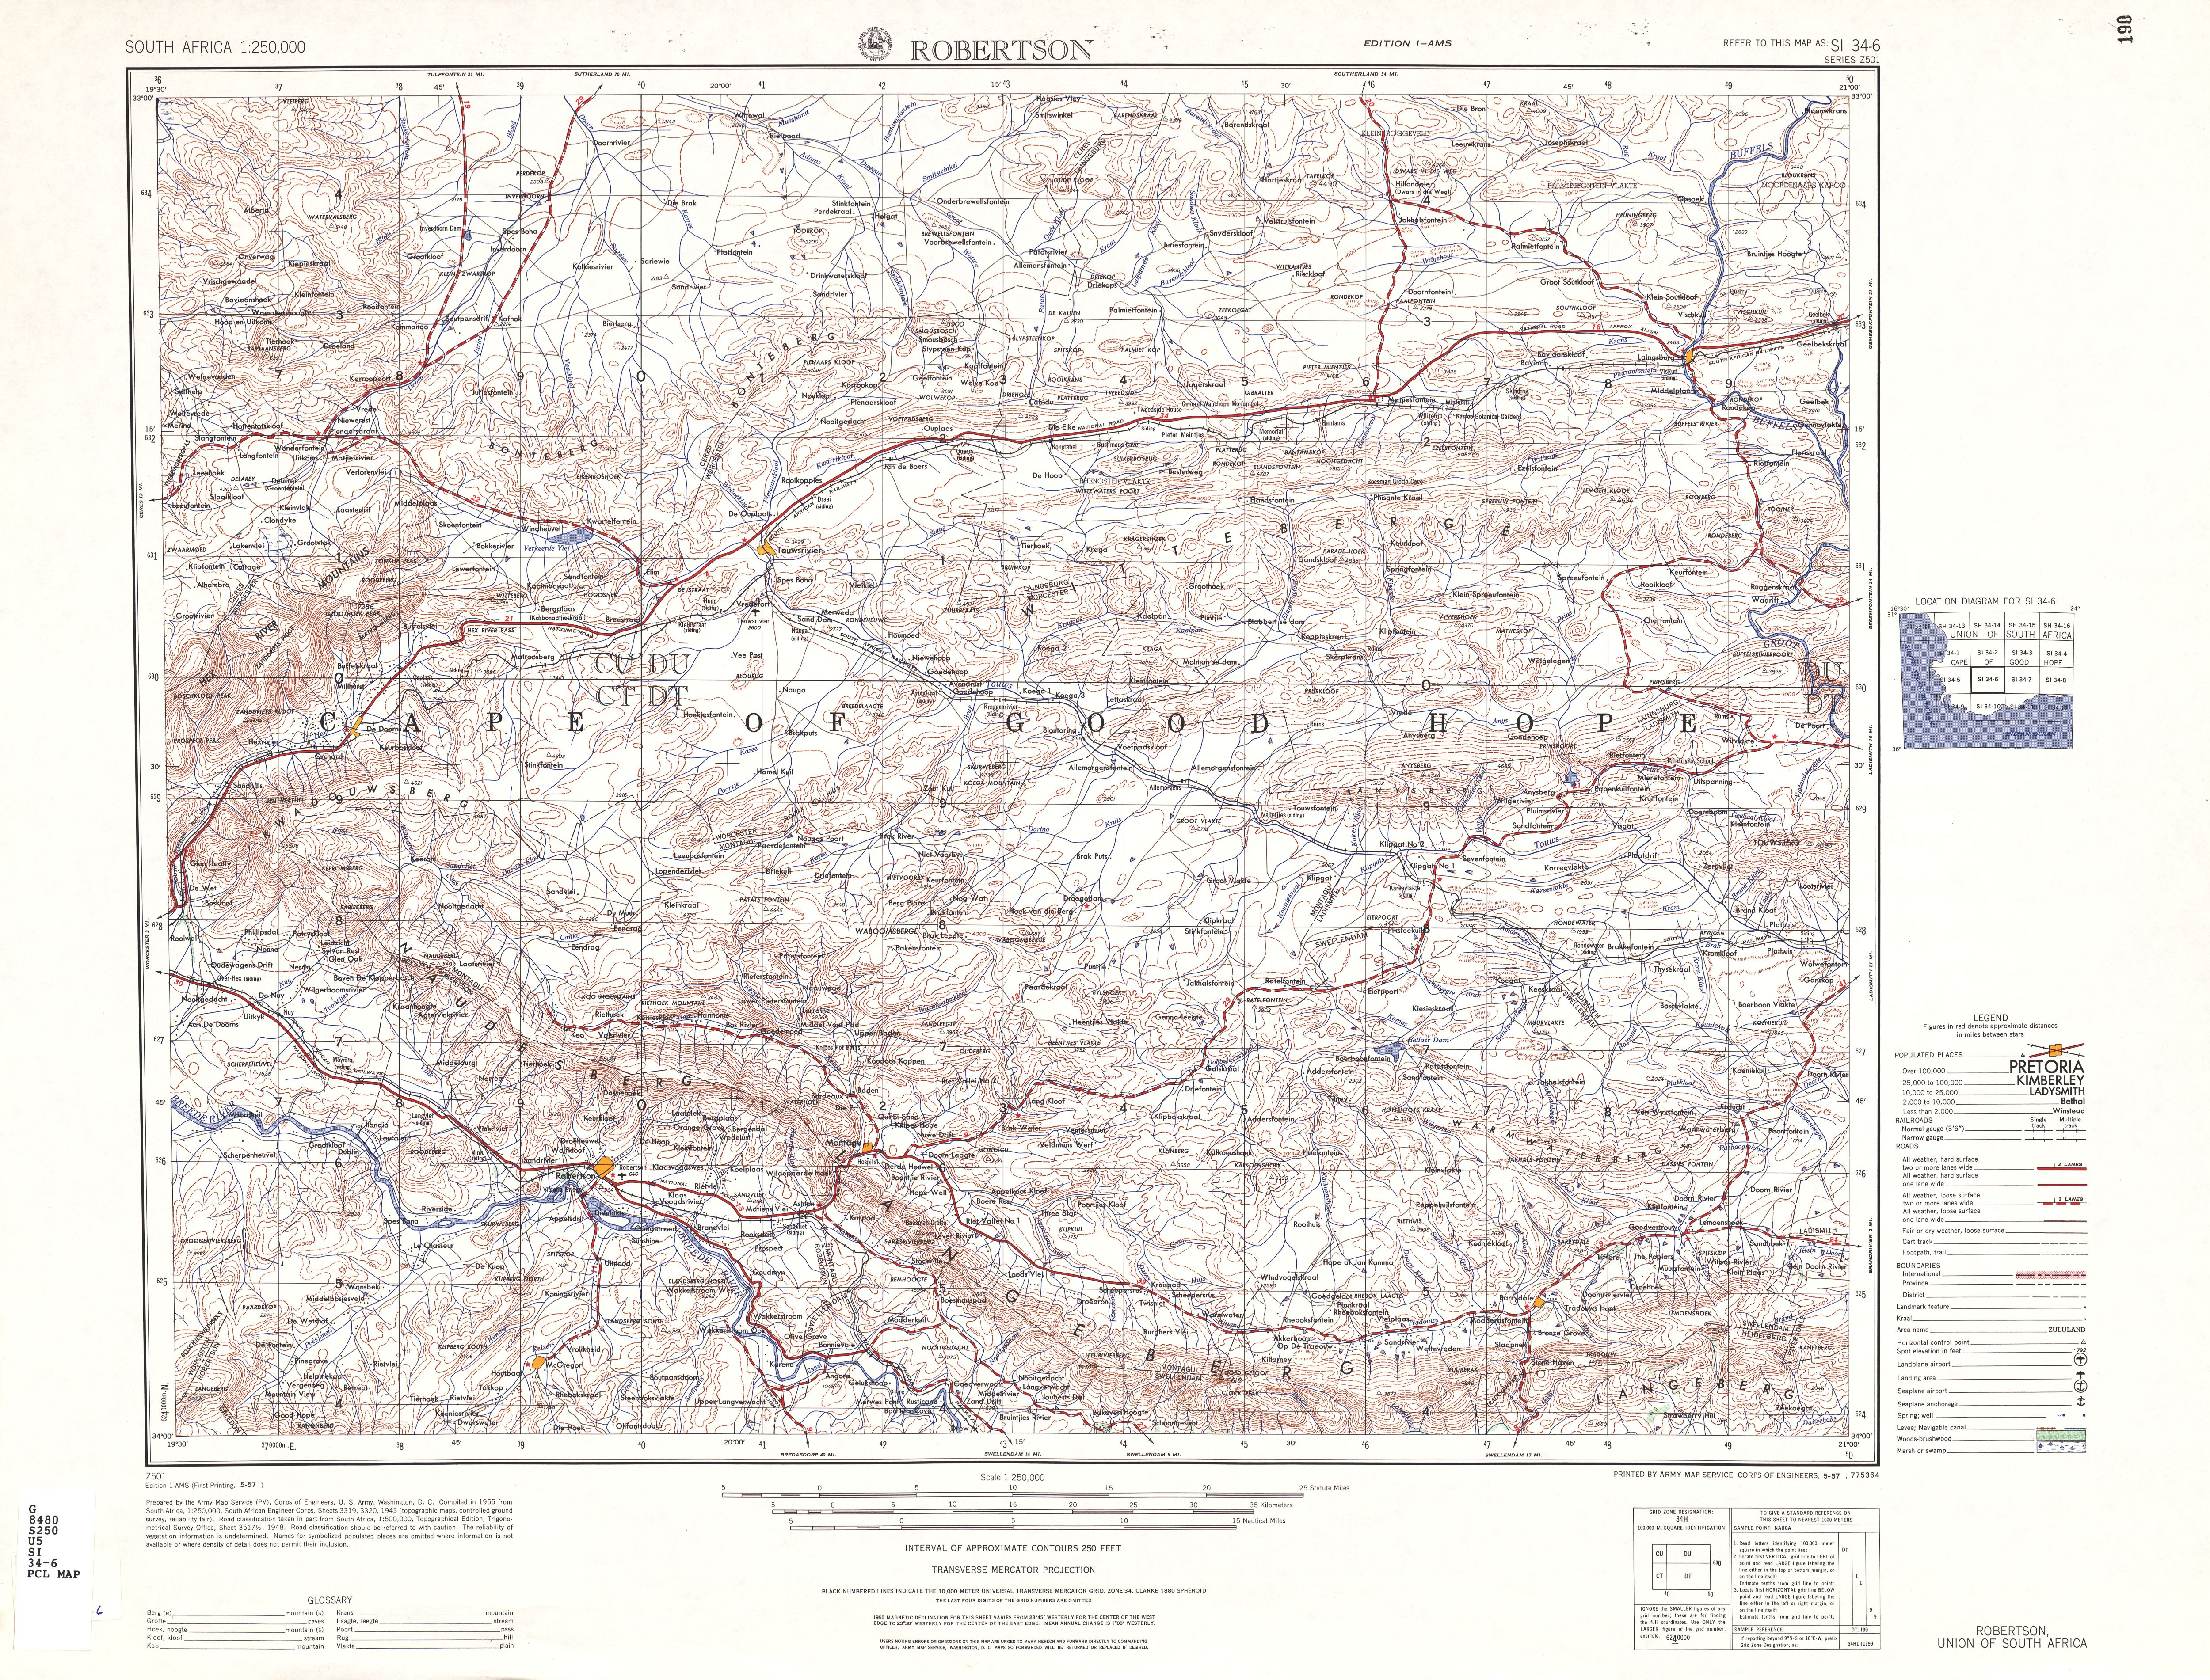 Robertson Topographic Map Sheet, Southern Africa 1954